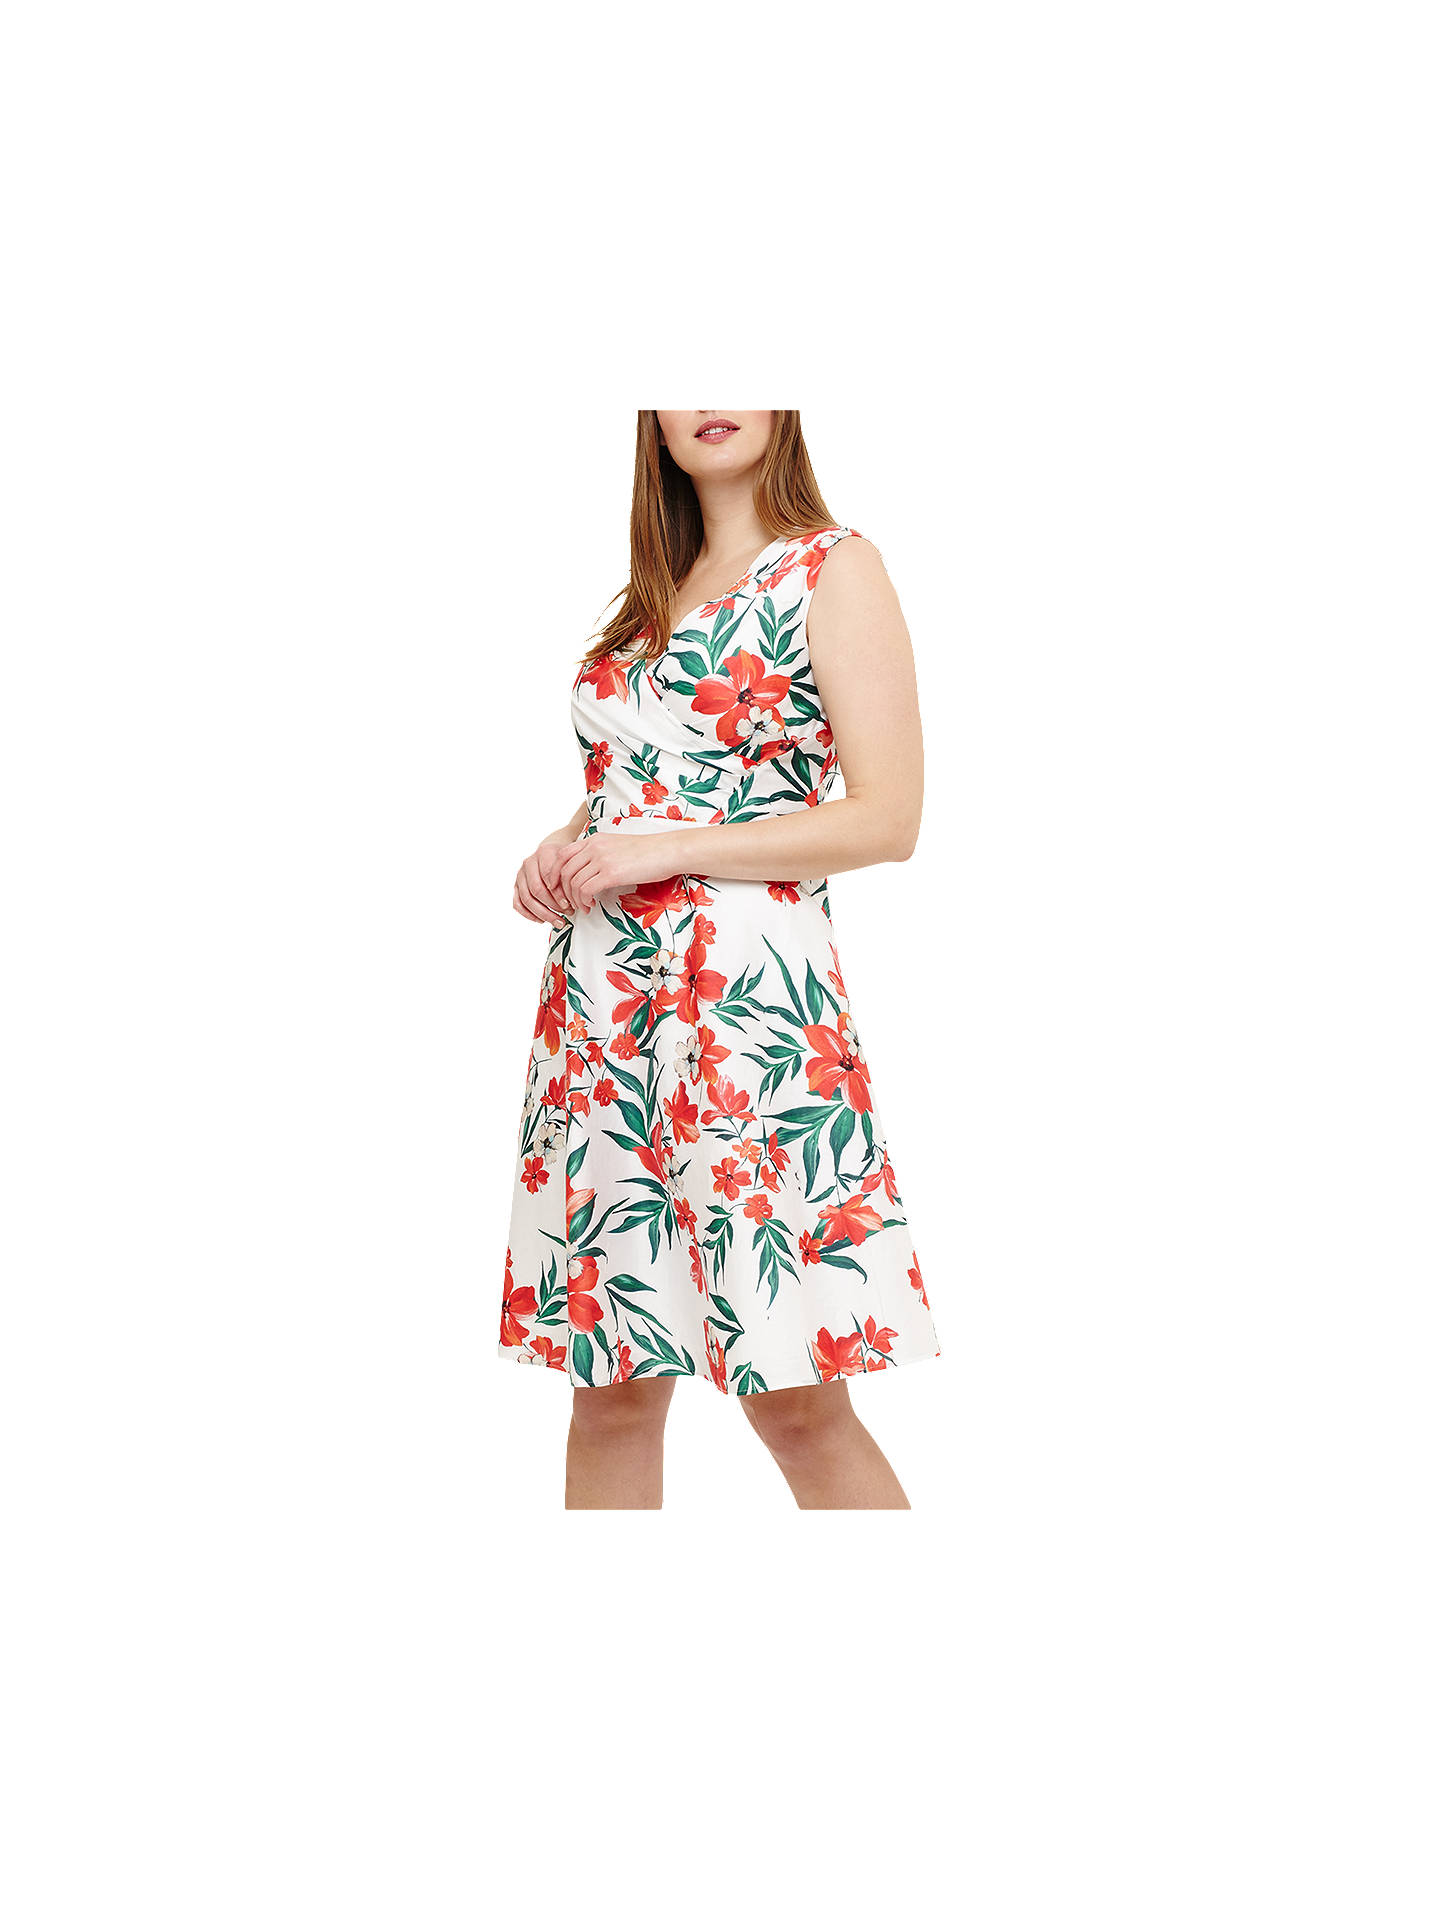 BuyStudio 8 Ivanna Floral Dress, White/Multi, 12 Online at johnlewis.com